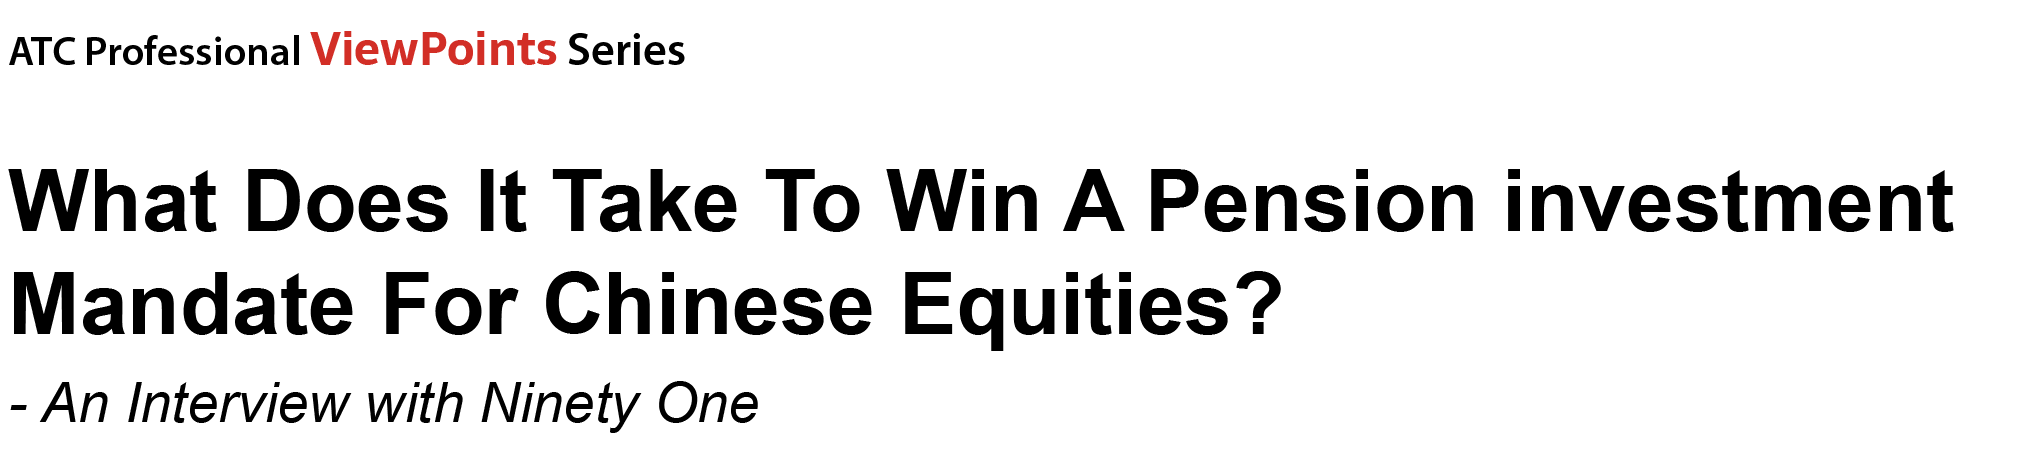 What Does It Take To Win A Pension investment Mandate For Chinese Equities?